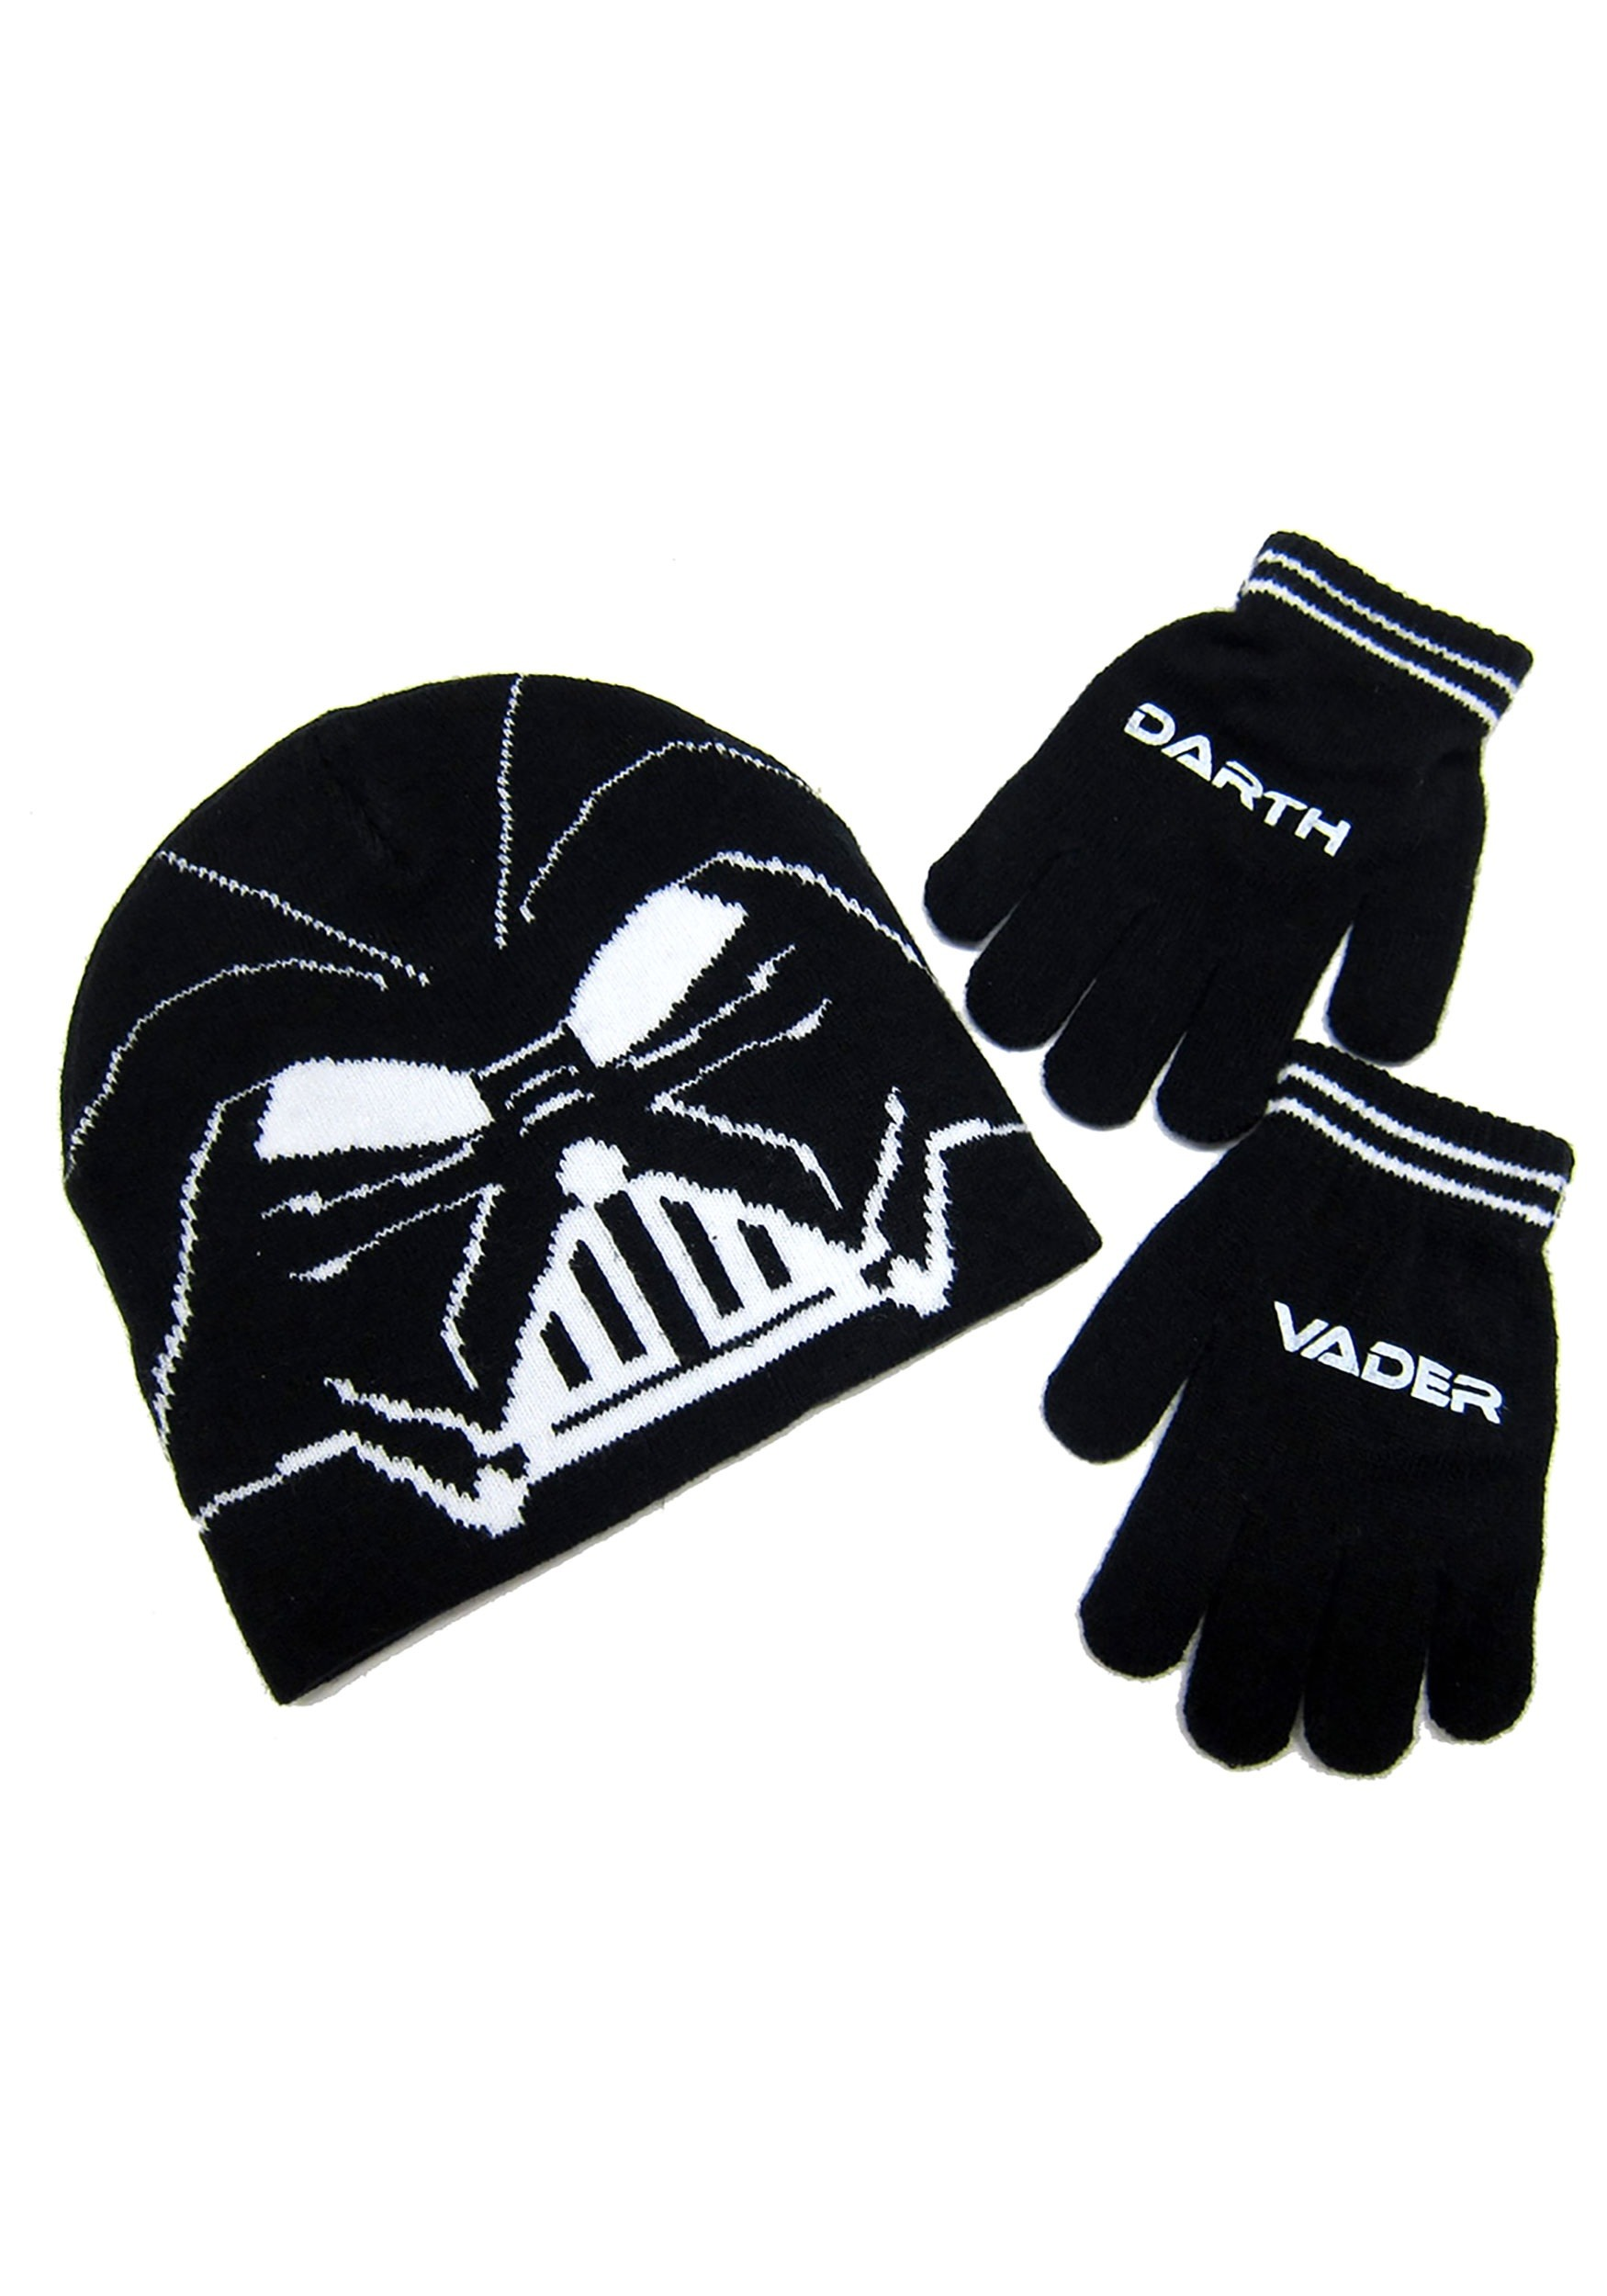 INOpets.com Anything for Pets Parents & Their Pets Darth Vader Kids Knit Beanie & Gloves Set from Star Wars